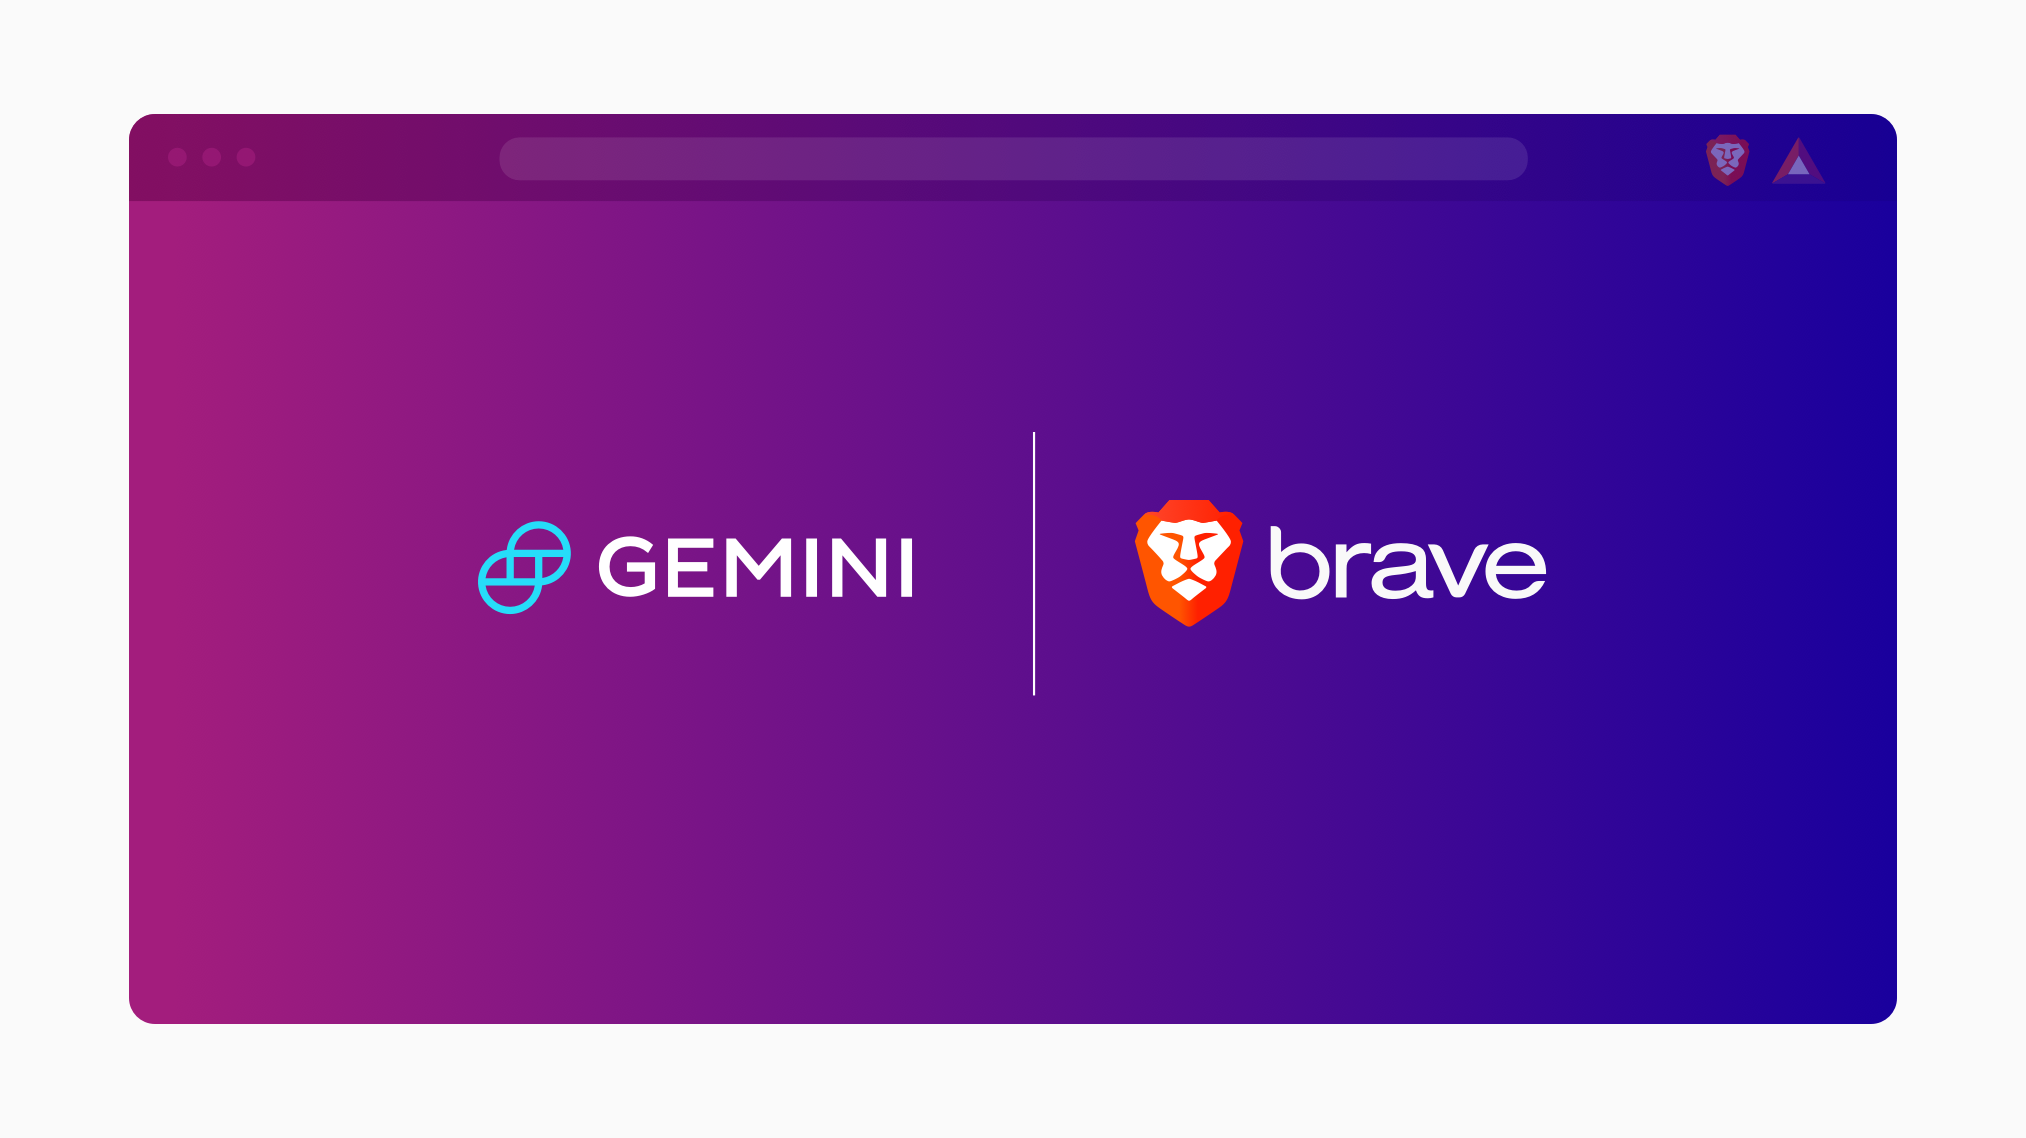 Gemini Integrates With Brave for Trading and Wallet Support